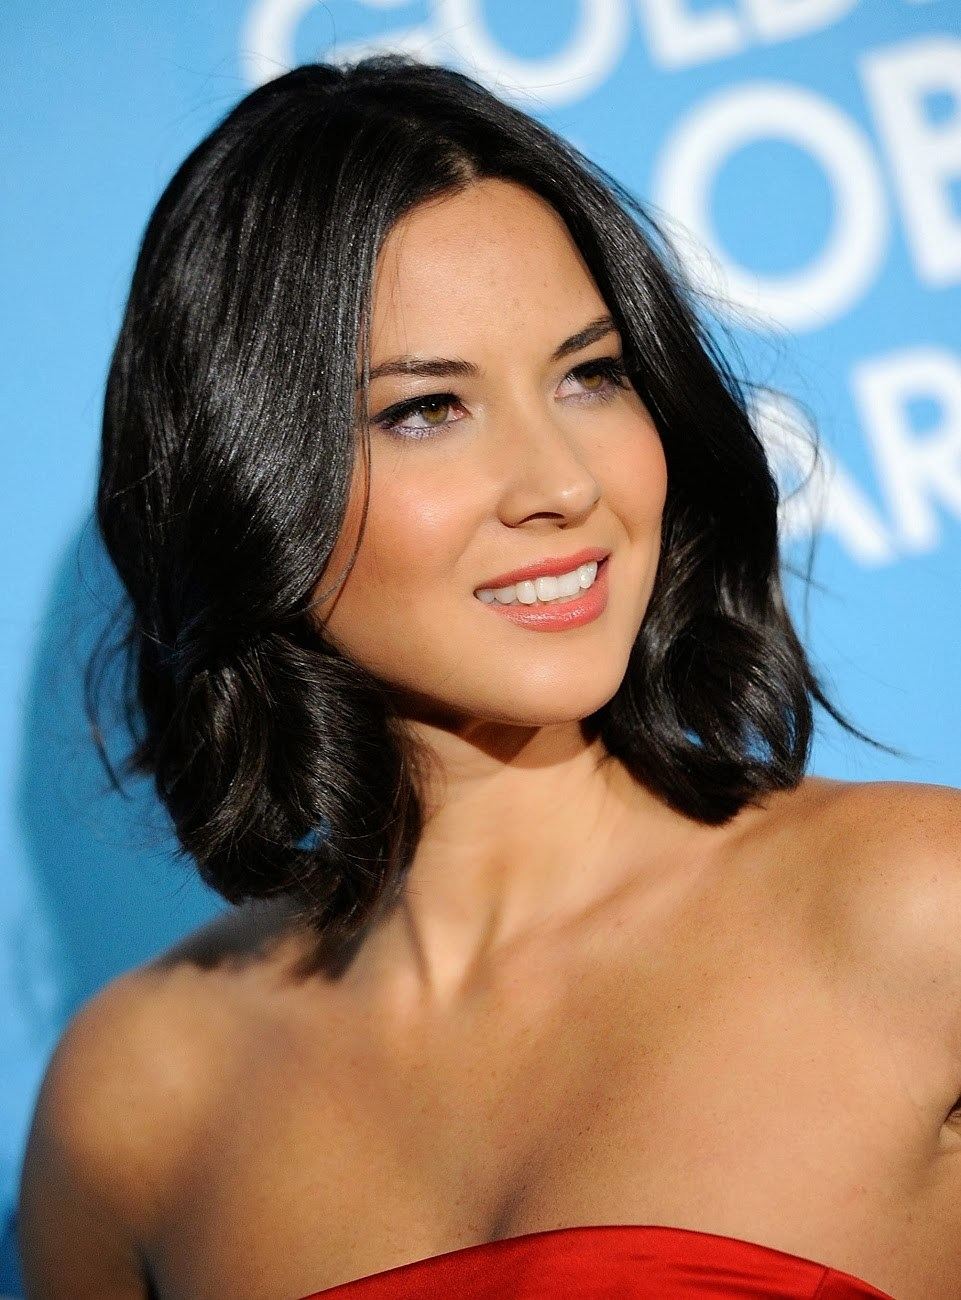 Slick-Looking-Short-and-Wavy-Hair Most Ravishing Hairstyles for Double Chin